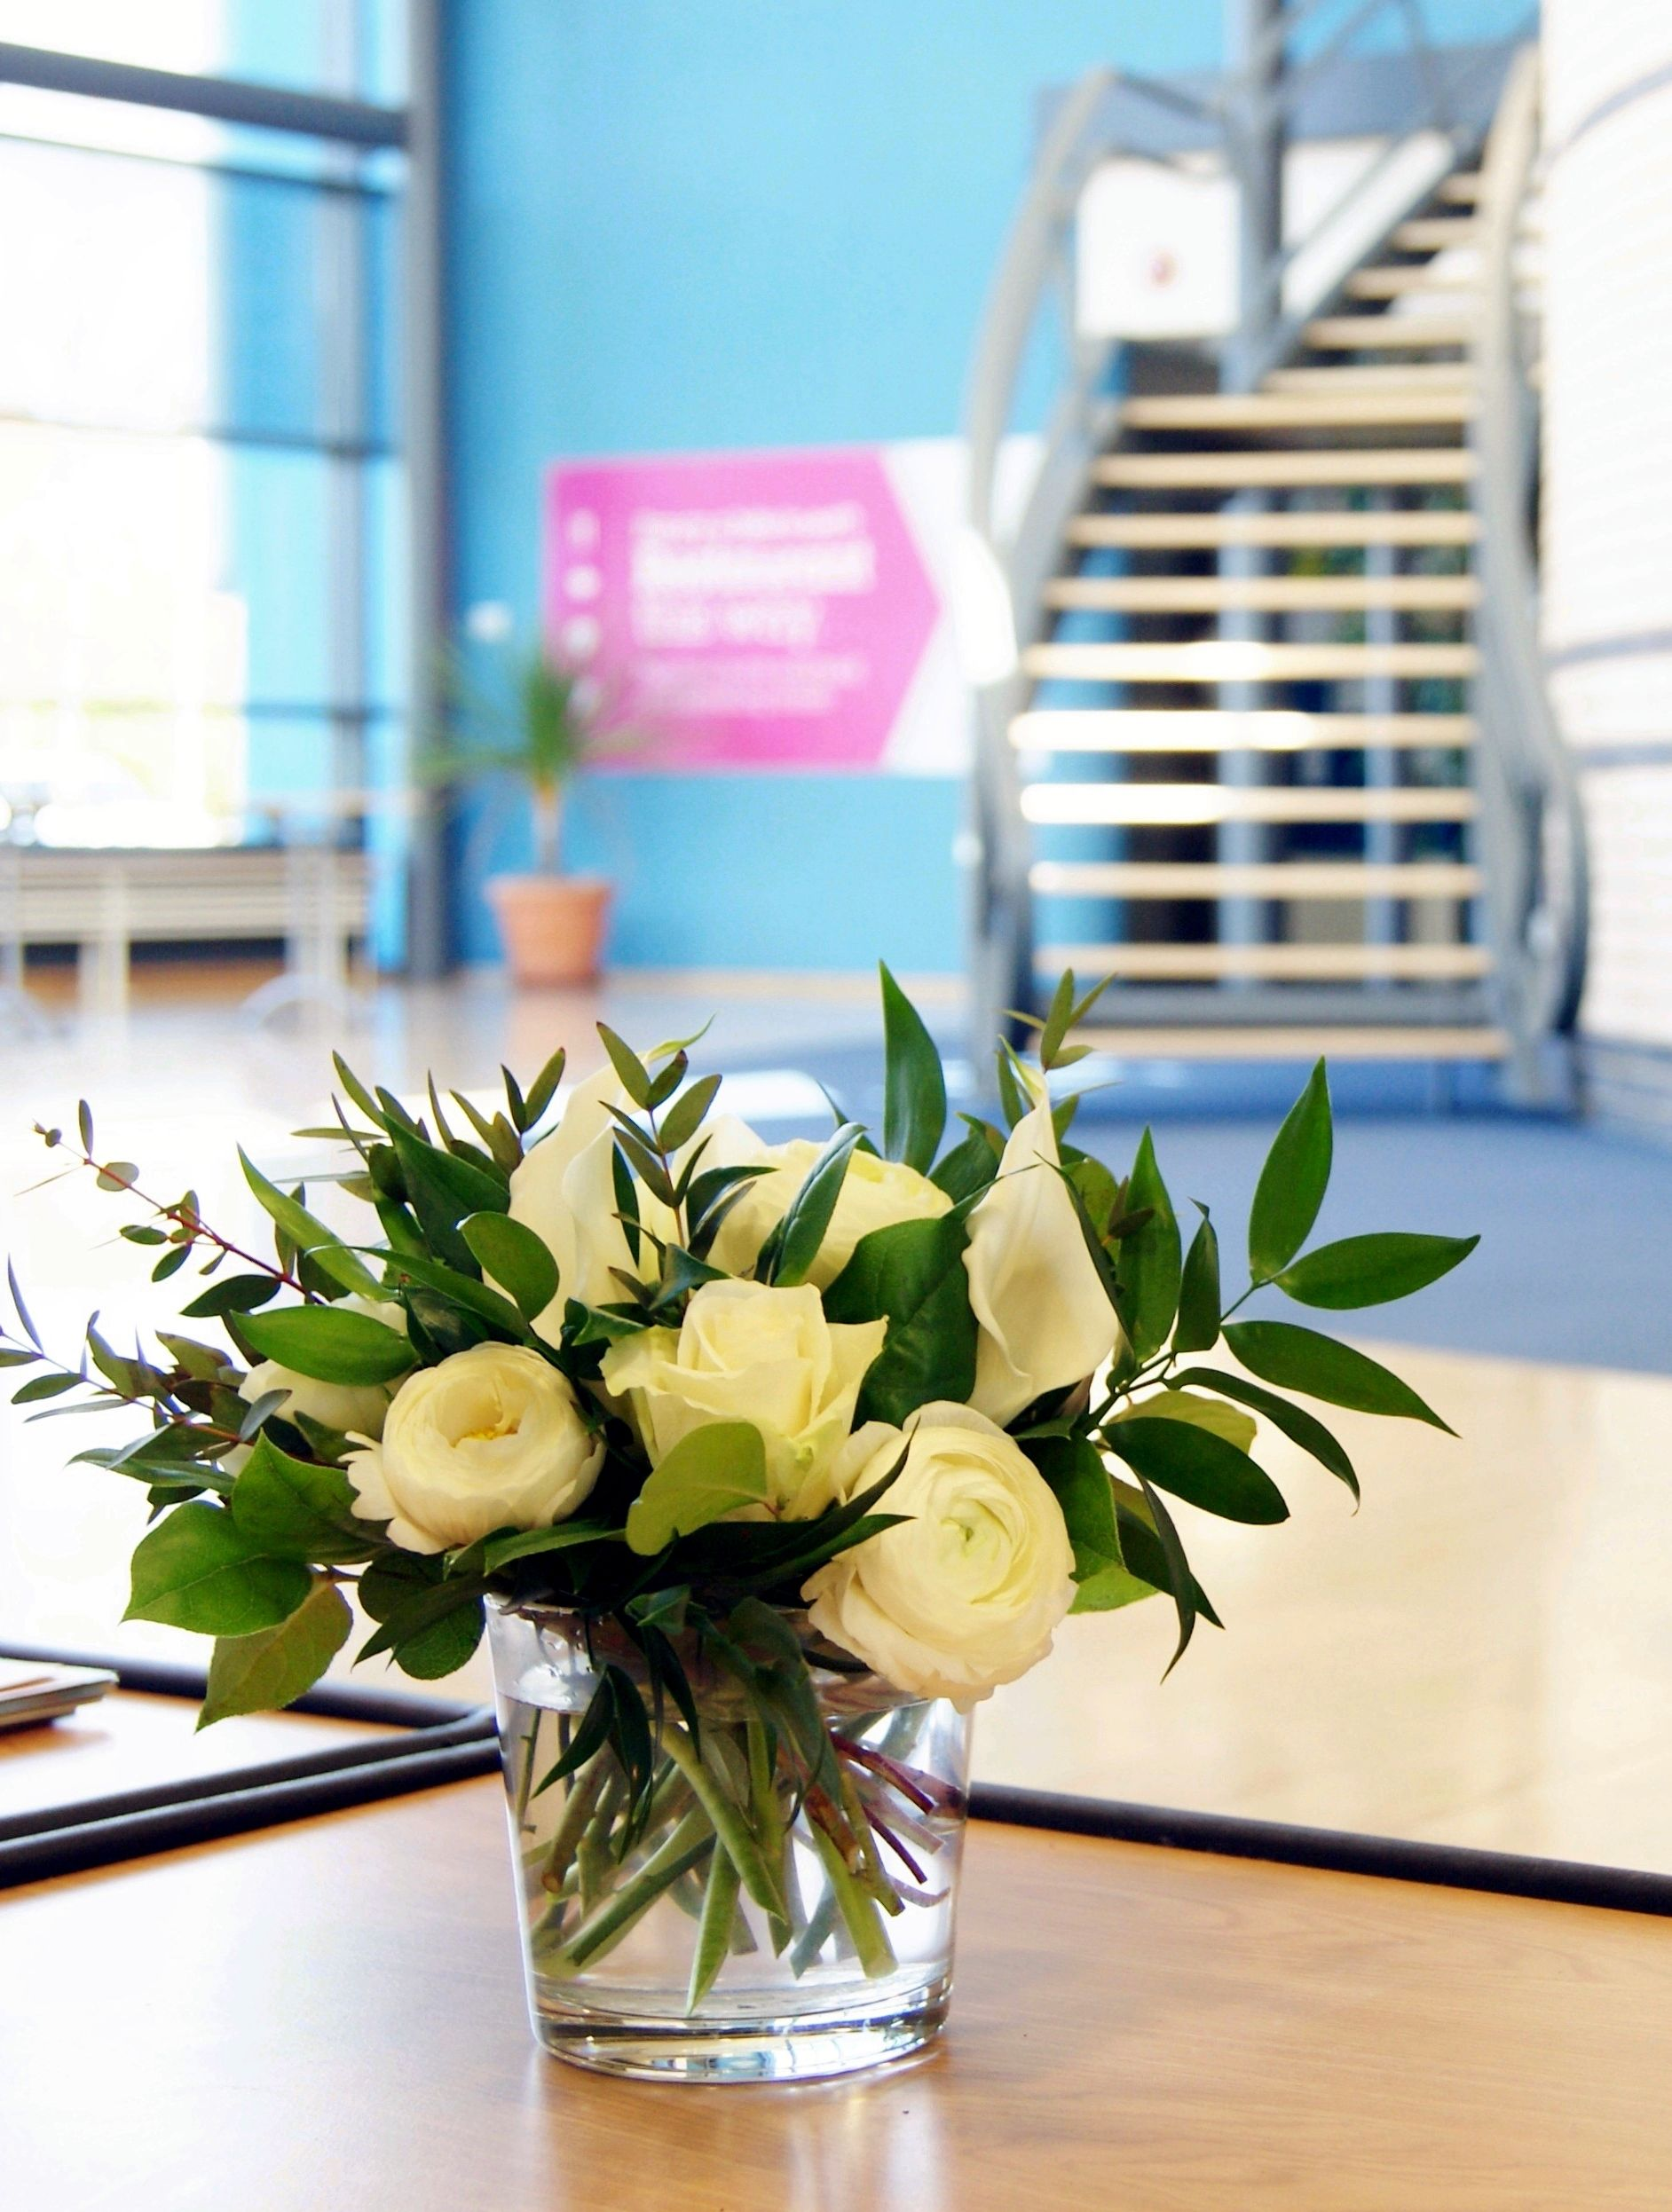 Naturalistic coffee table flowers for a business conference centre